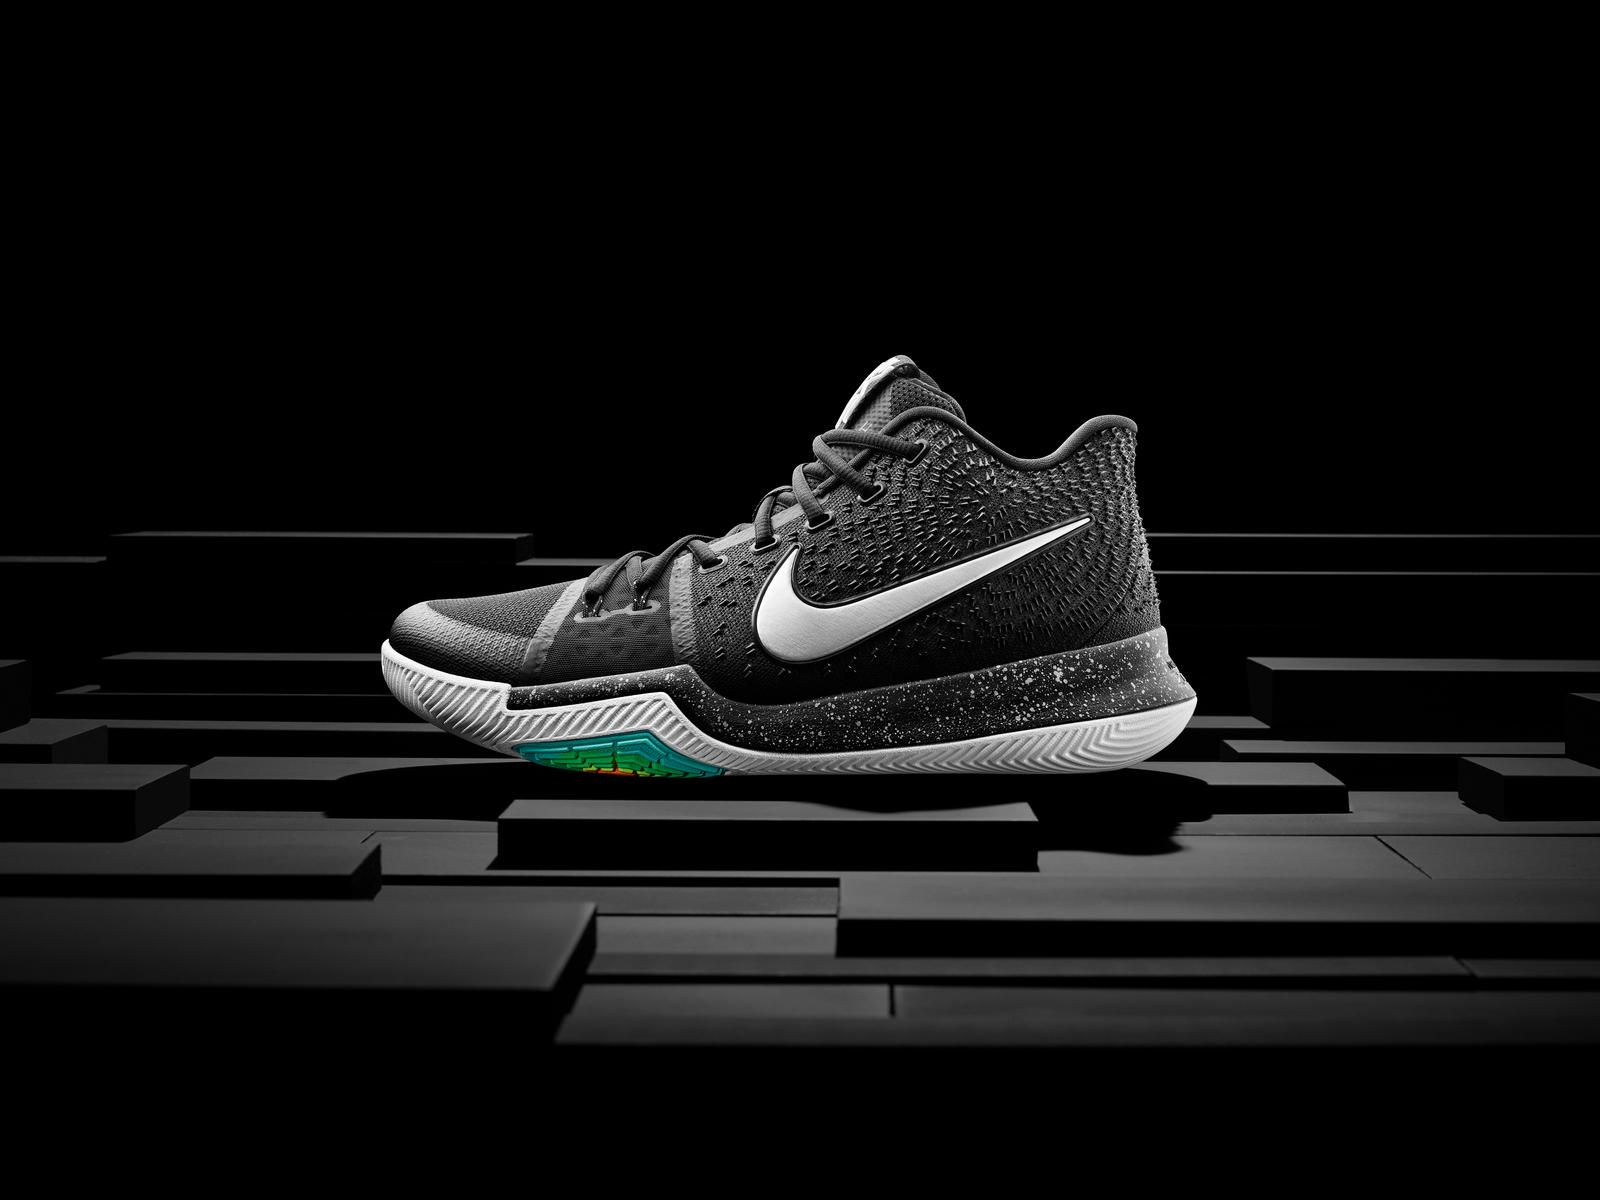 16-400_nike_kyrie_hero_single-01_native_1600